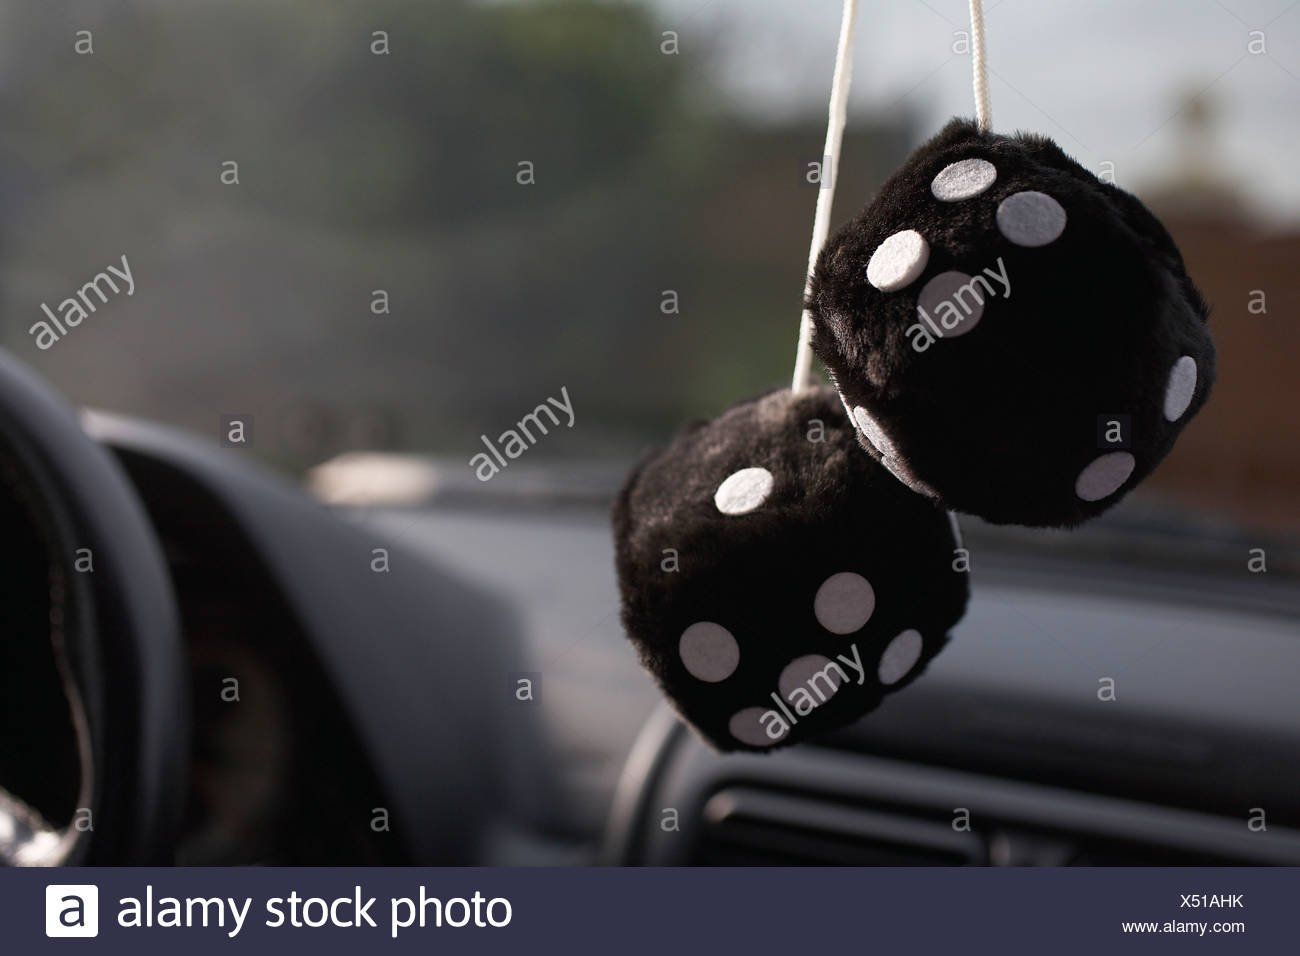 Furry dice hanging in car - Stock Image